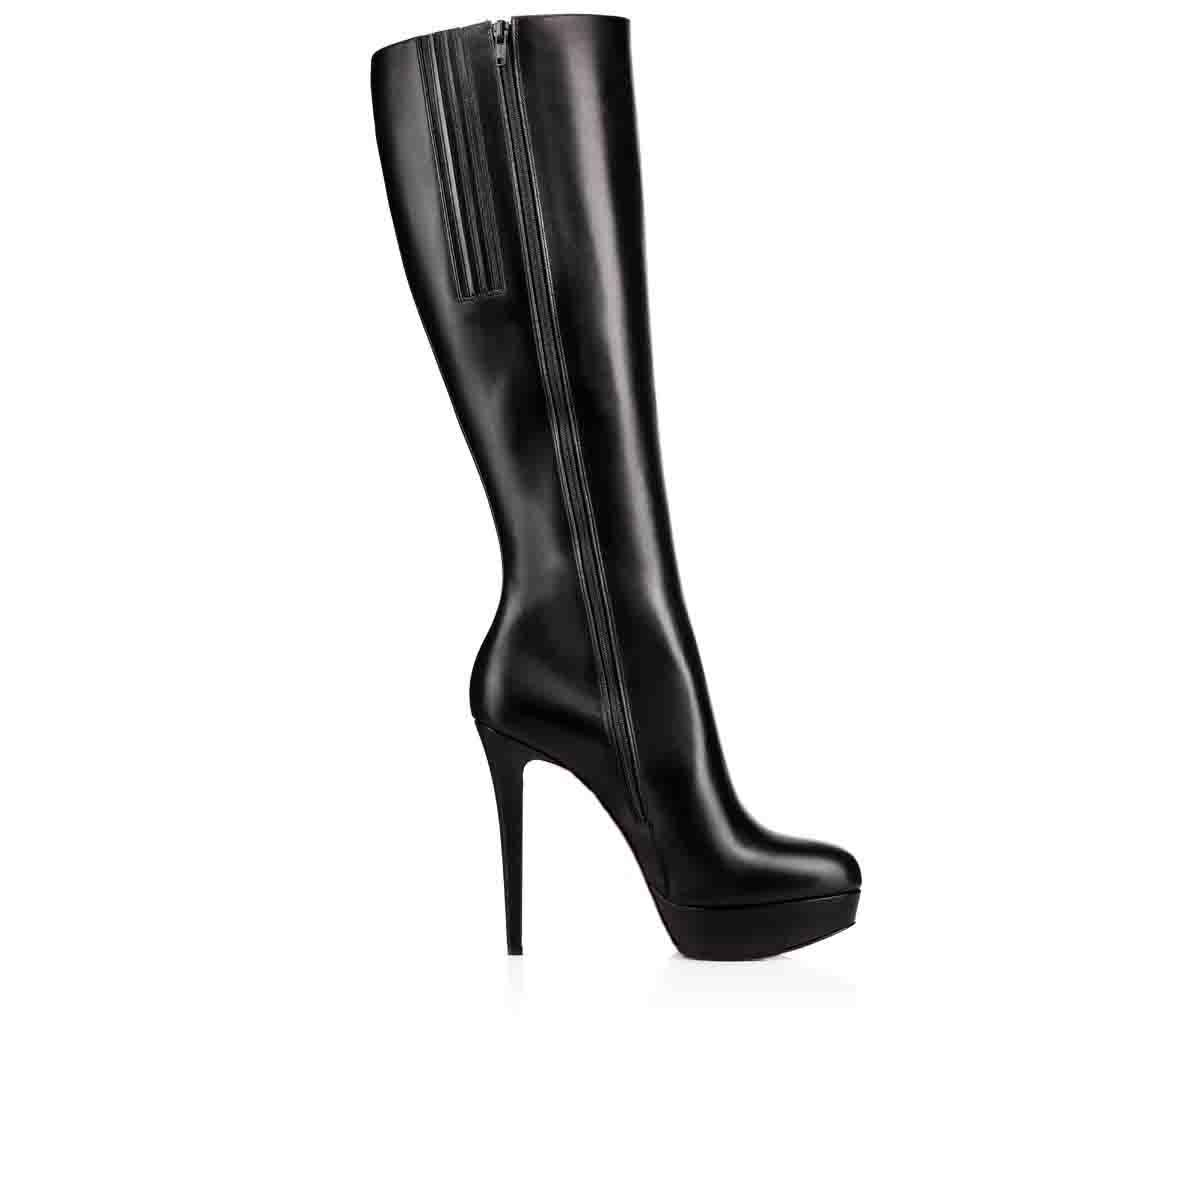 Hot Sale-rty Shoes Red Bottom Boot for Women Shoes Boots Tall Boots Bianca Botta Waterproof platform high heels